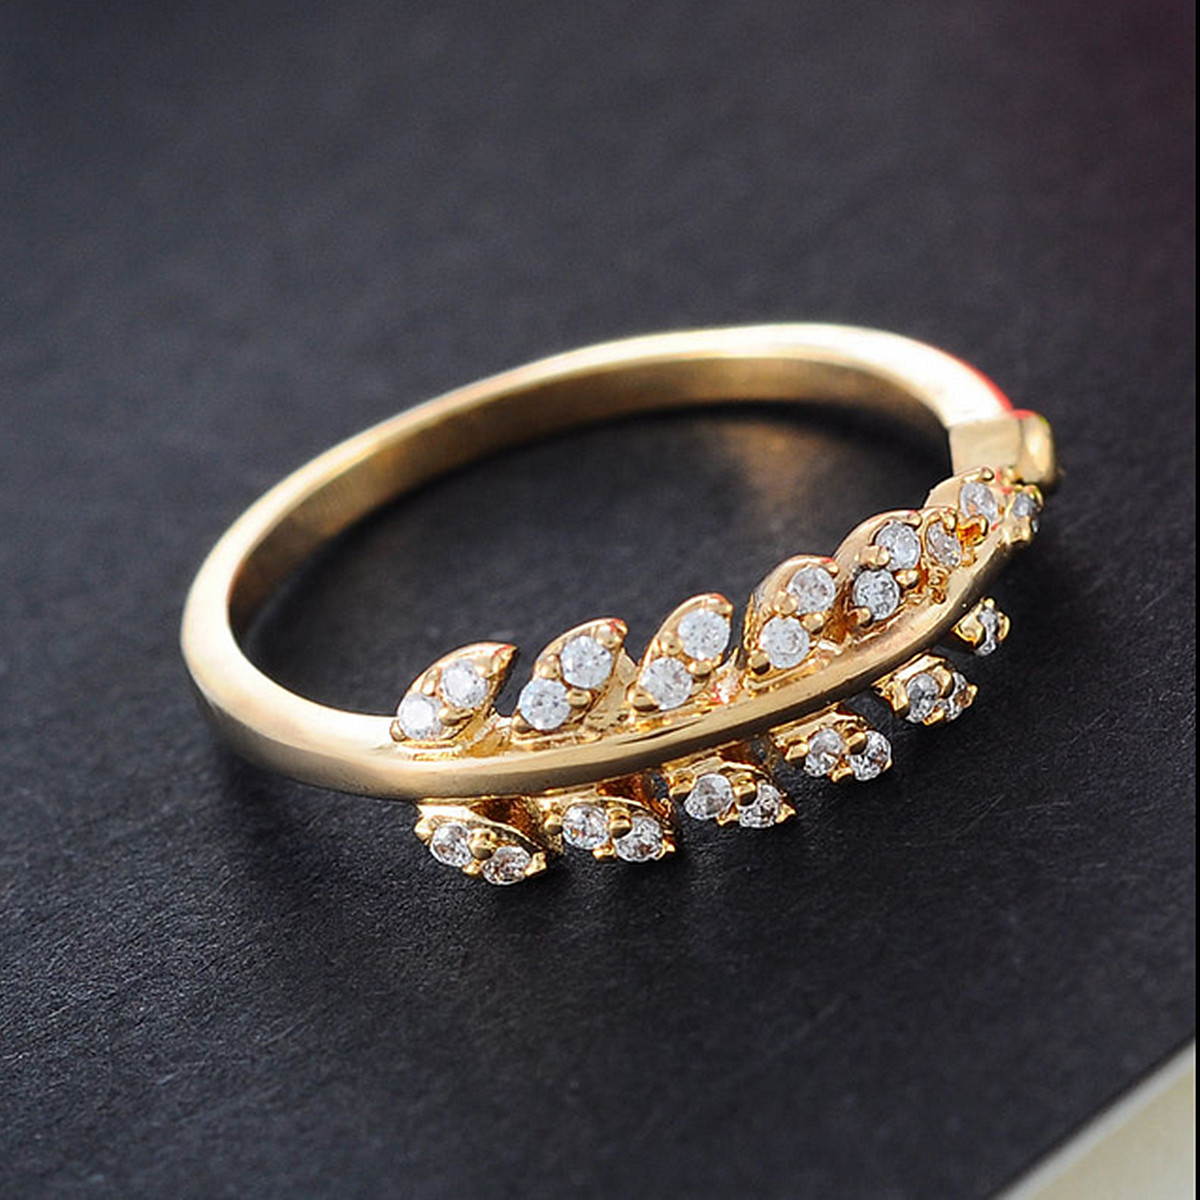 shop jewelry the simulated wedding women stone white multicolor band silver off item fashion for gifts engagement anel ring rings sets lady diamond